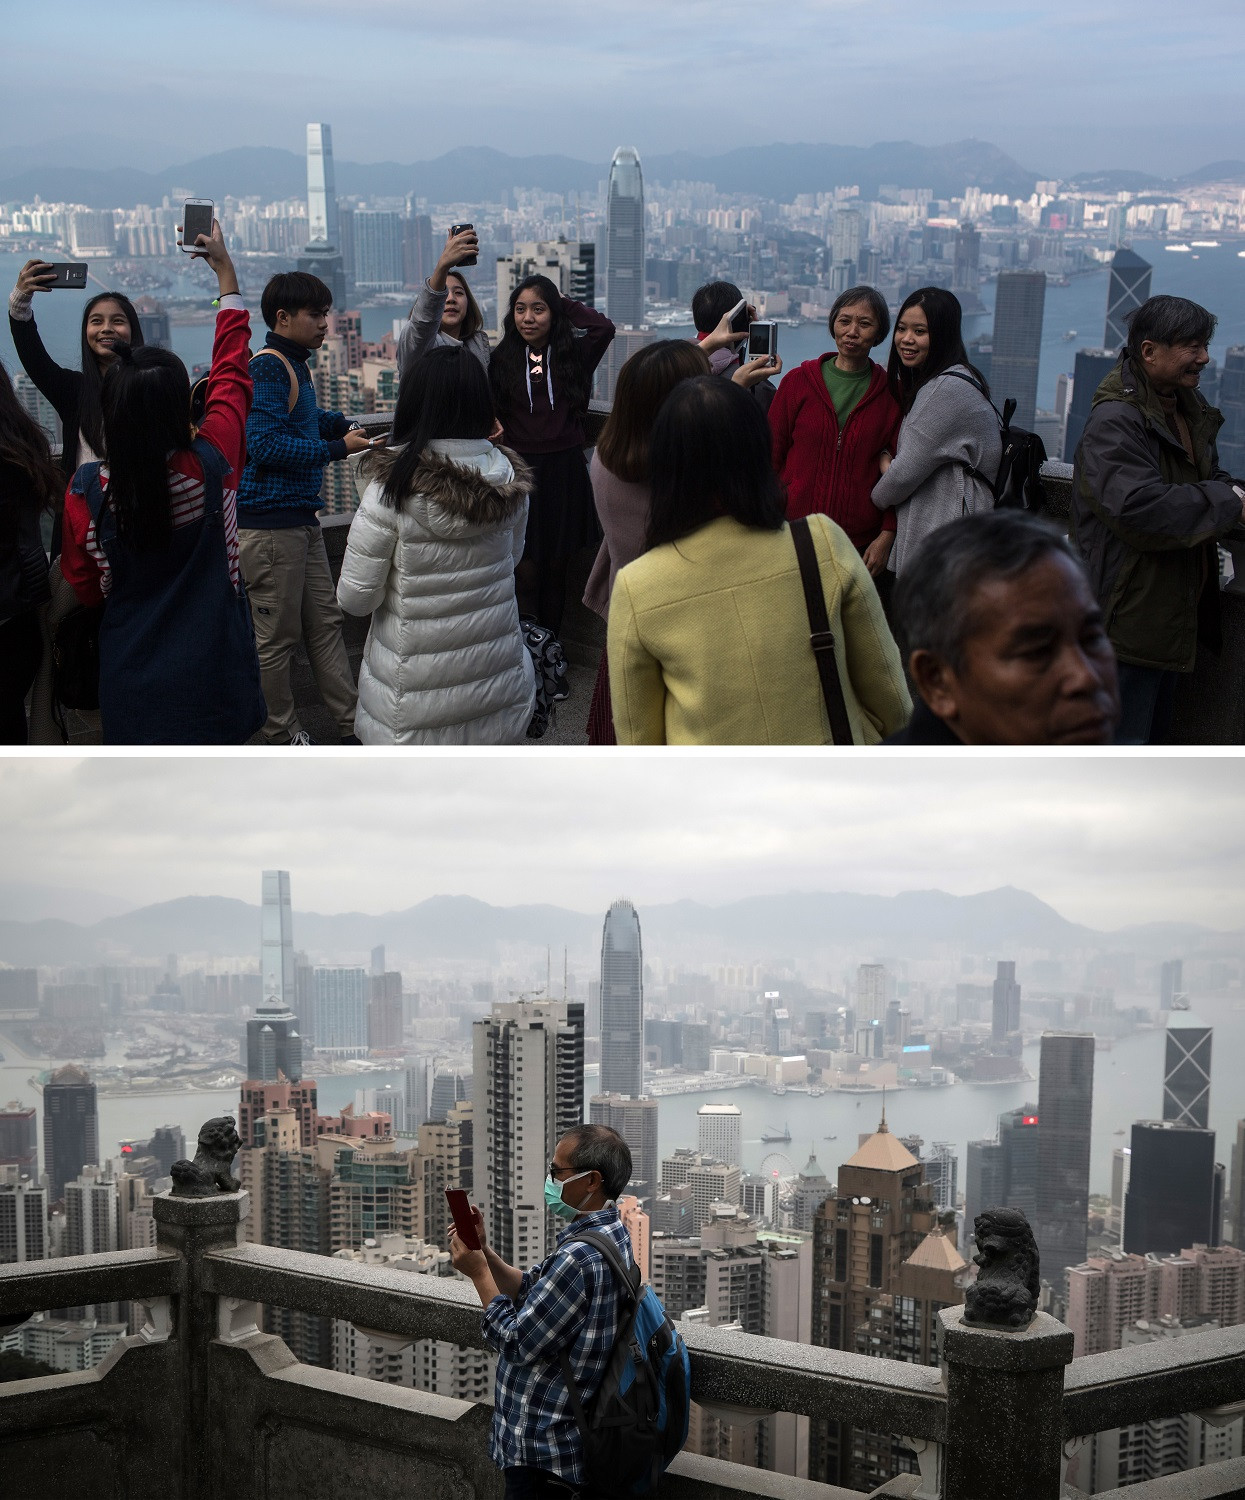 This combination photo created on March 8, 2020 shows tourists taking pictures at the Peak in Hong Kong on December 26, 2015 (top) and a man wearing a facemask as a precautionary measure against the spread of the COVID-19 novel coronavirus at the same location on March 7, 2020.